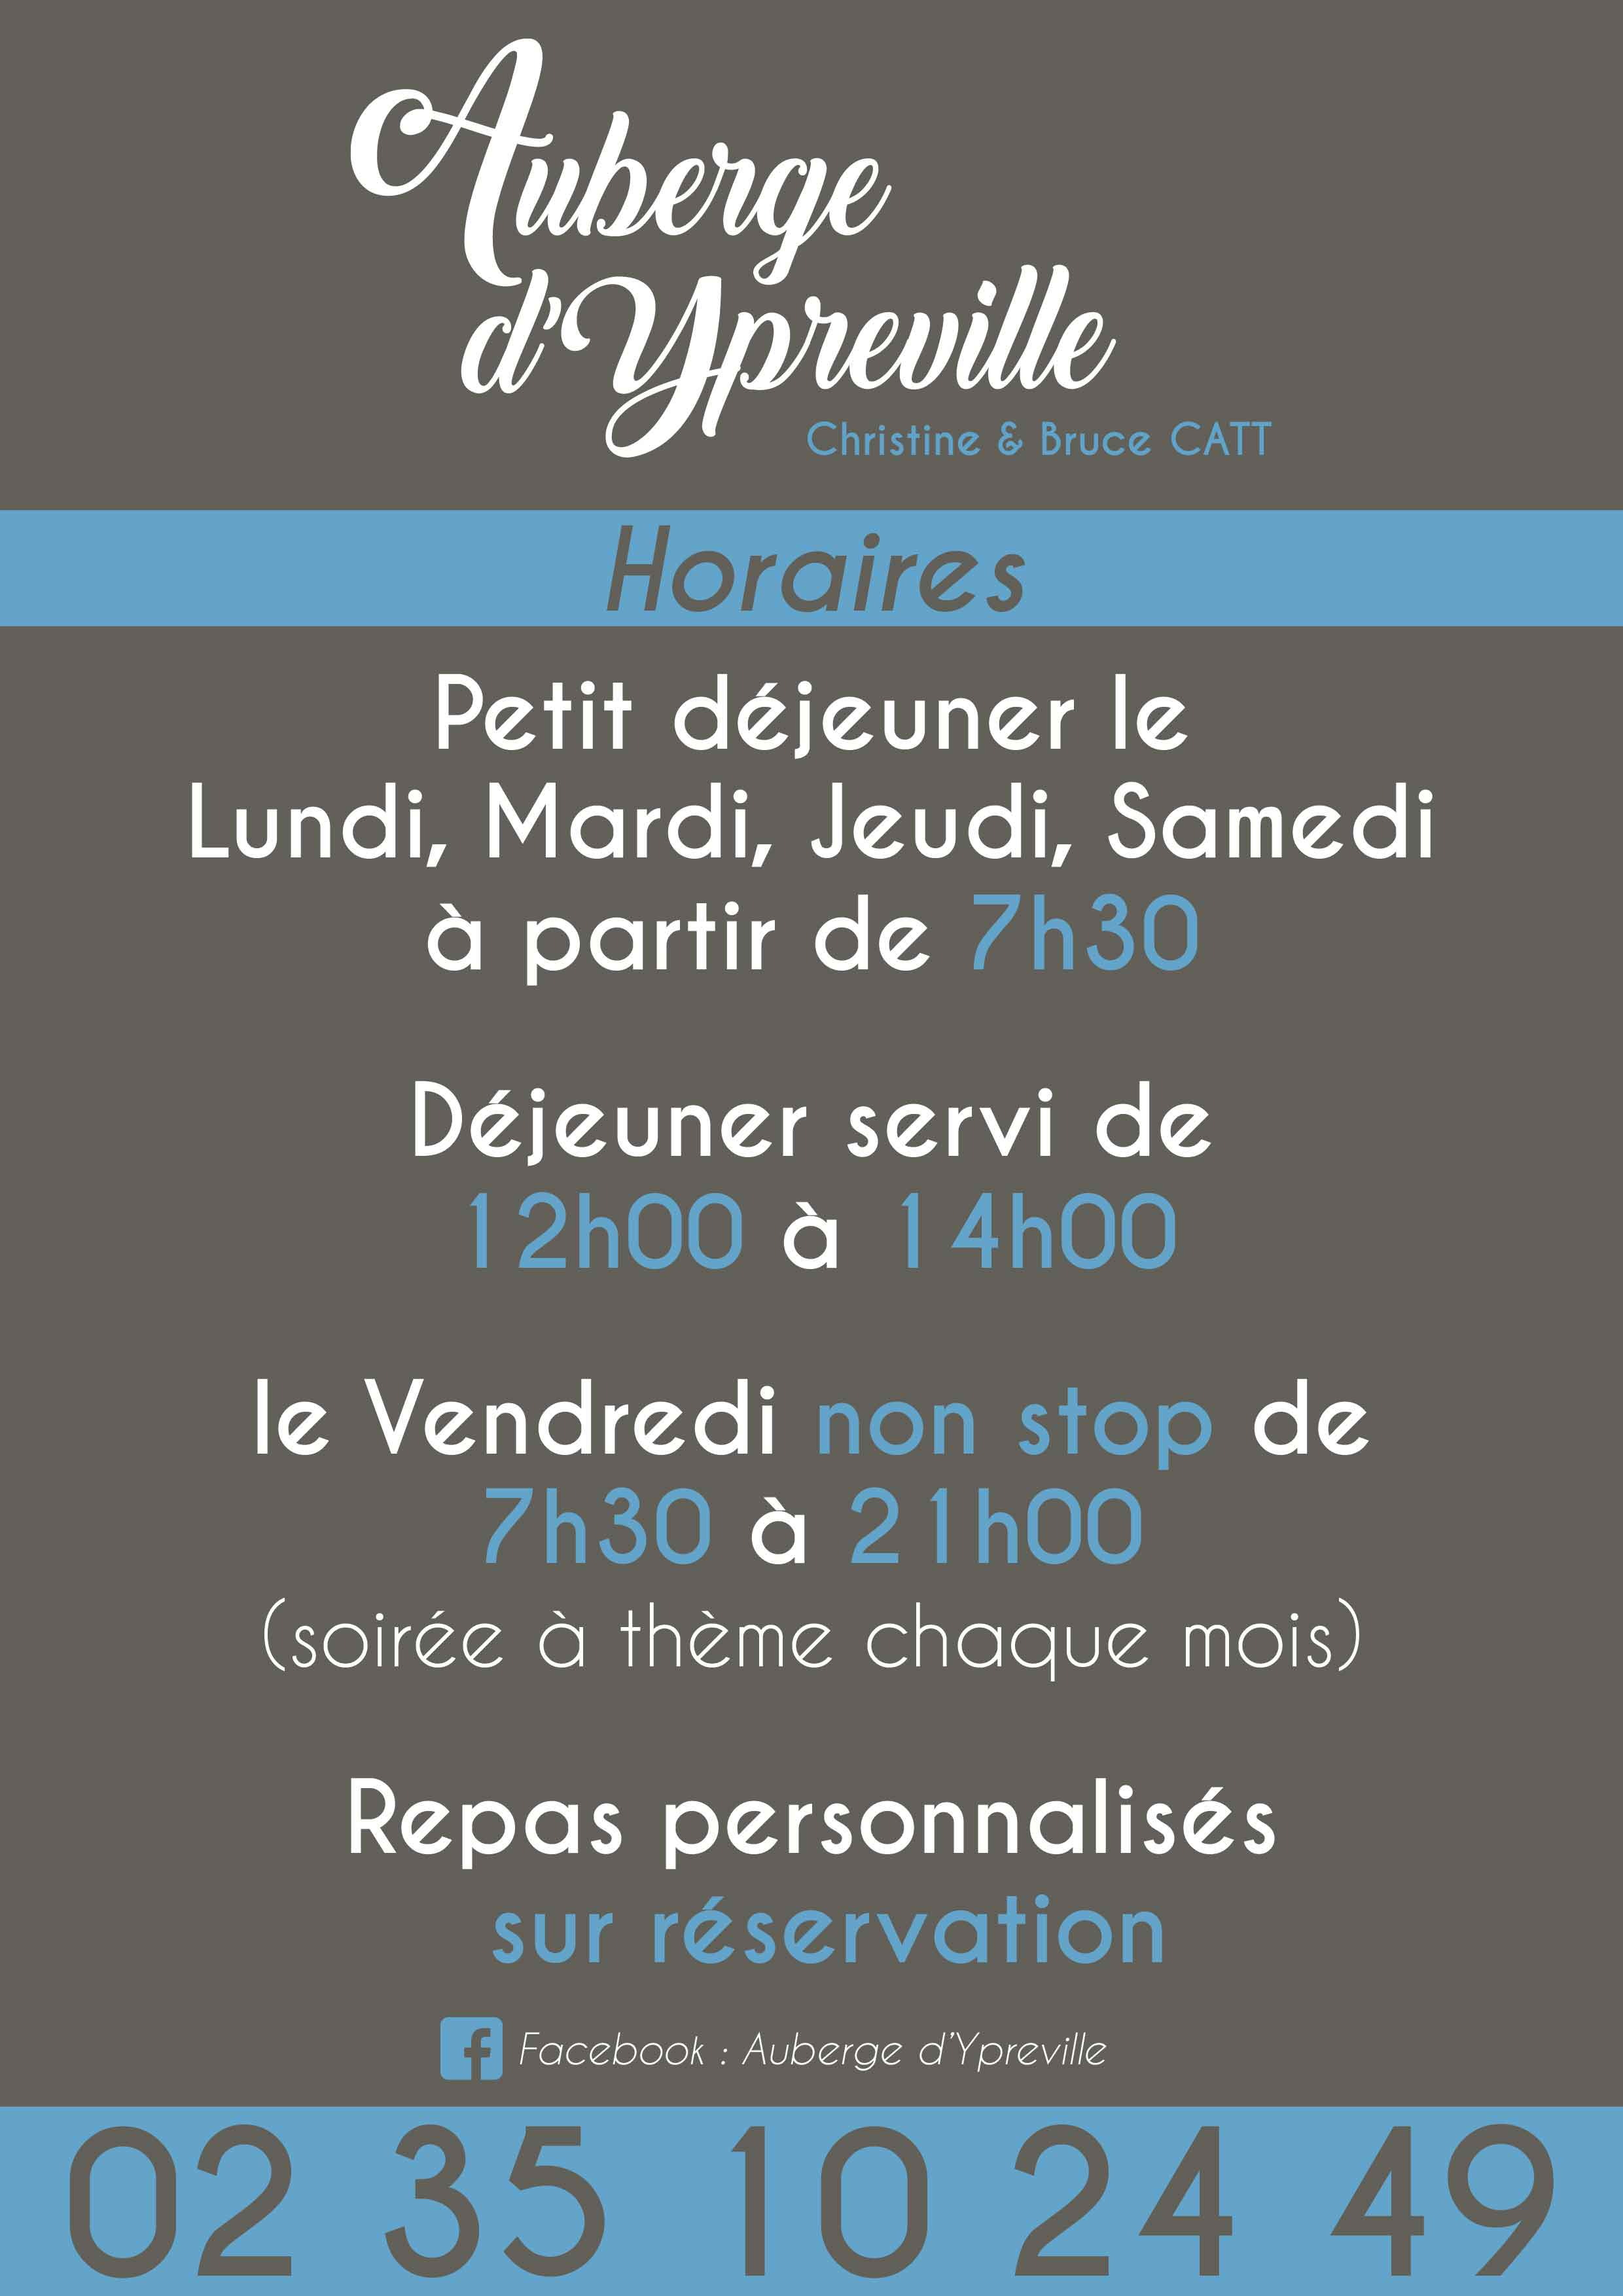 Horaires-Auberge-Ypreville-01